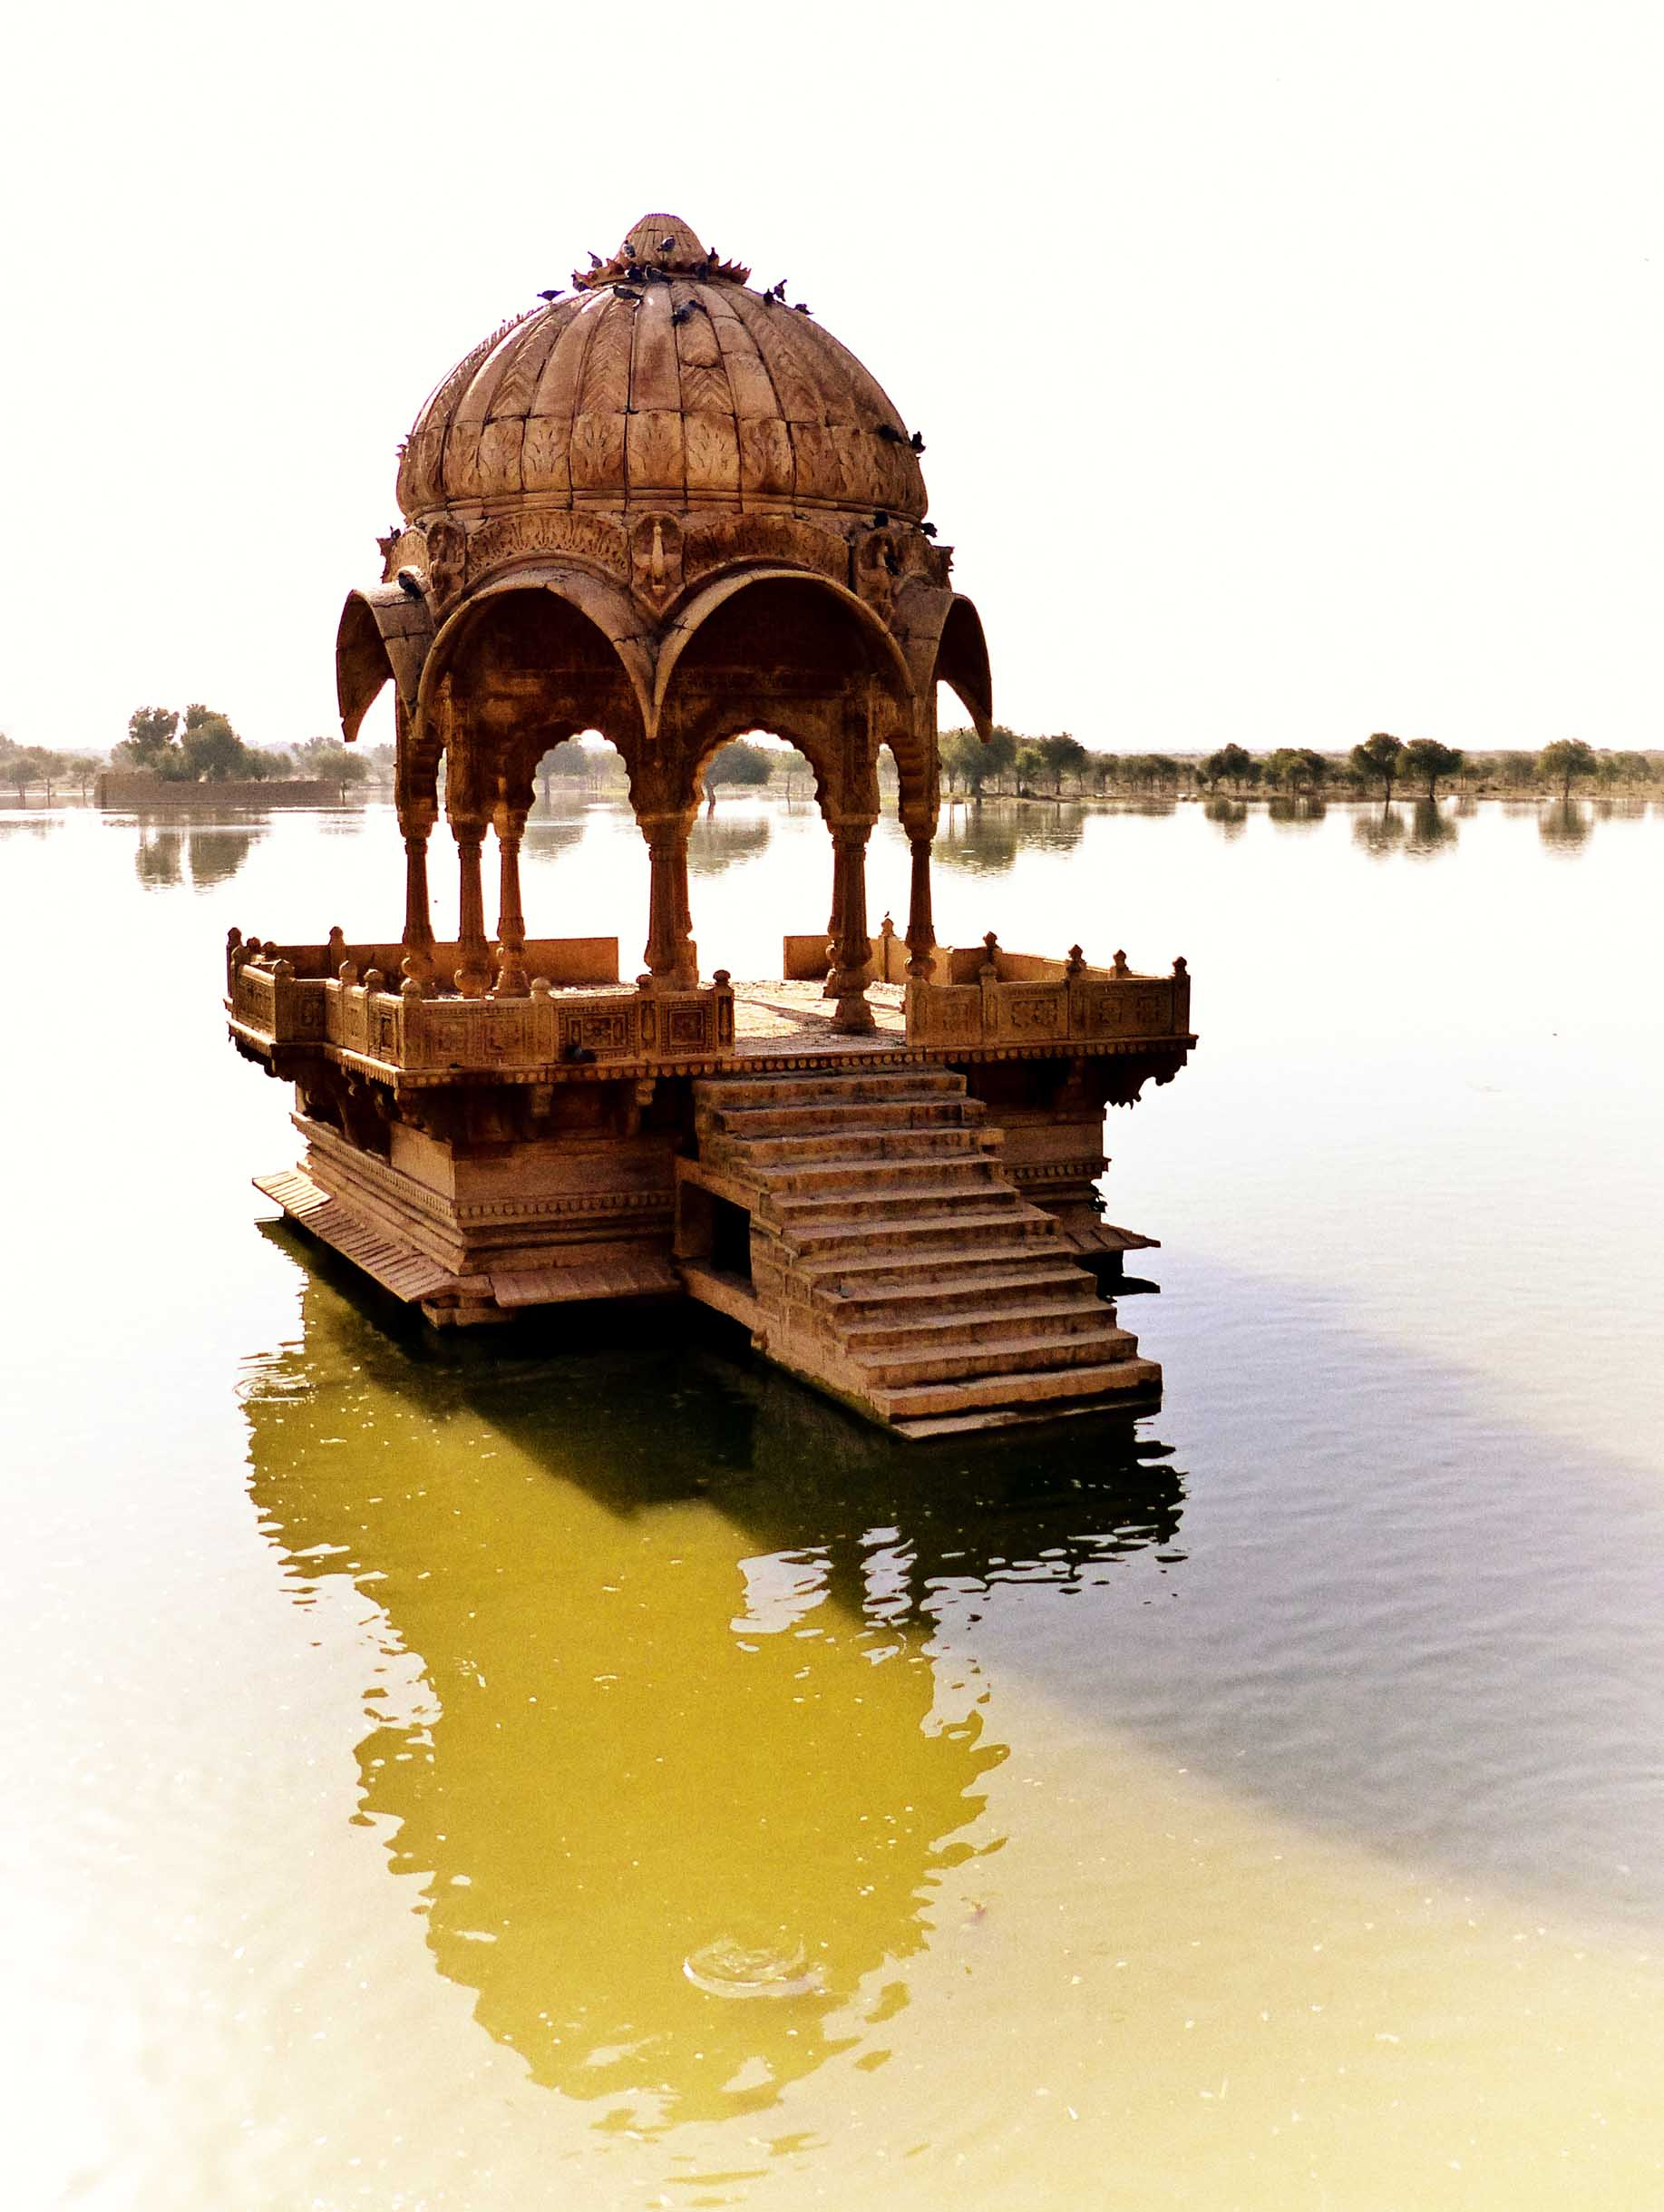 Domed building in a lake